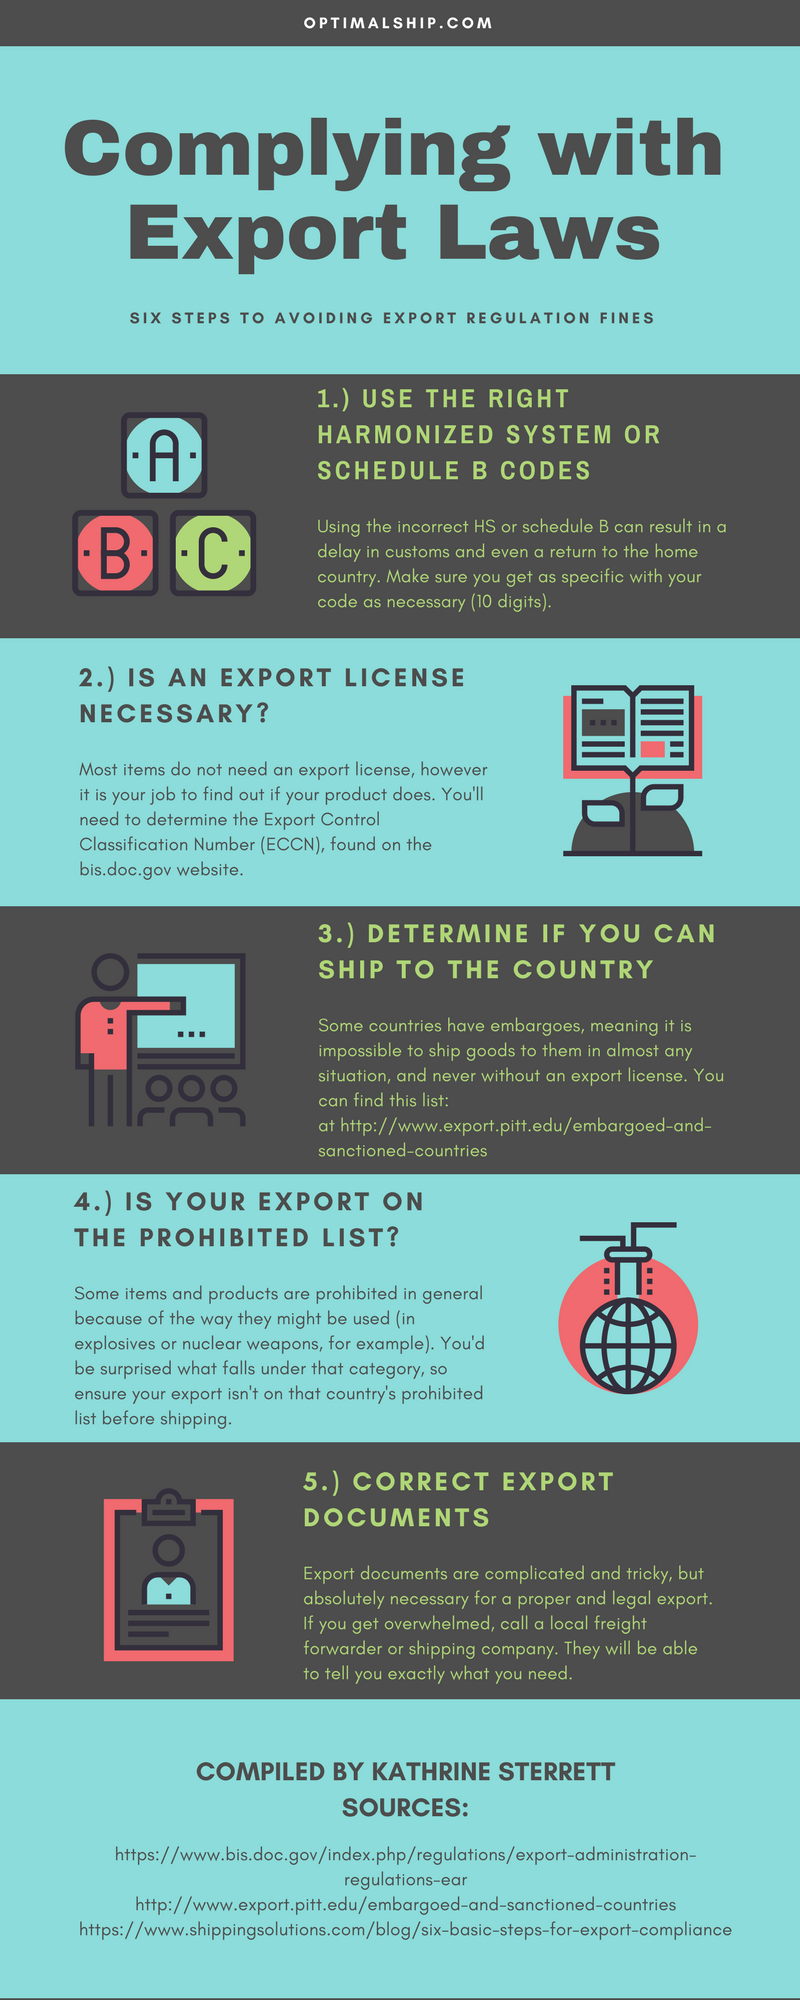 How to Comply with Export Laws (infographic)